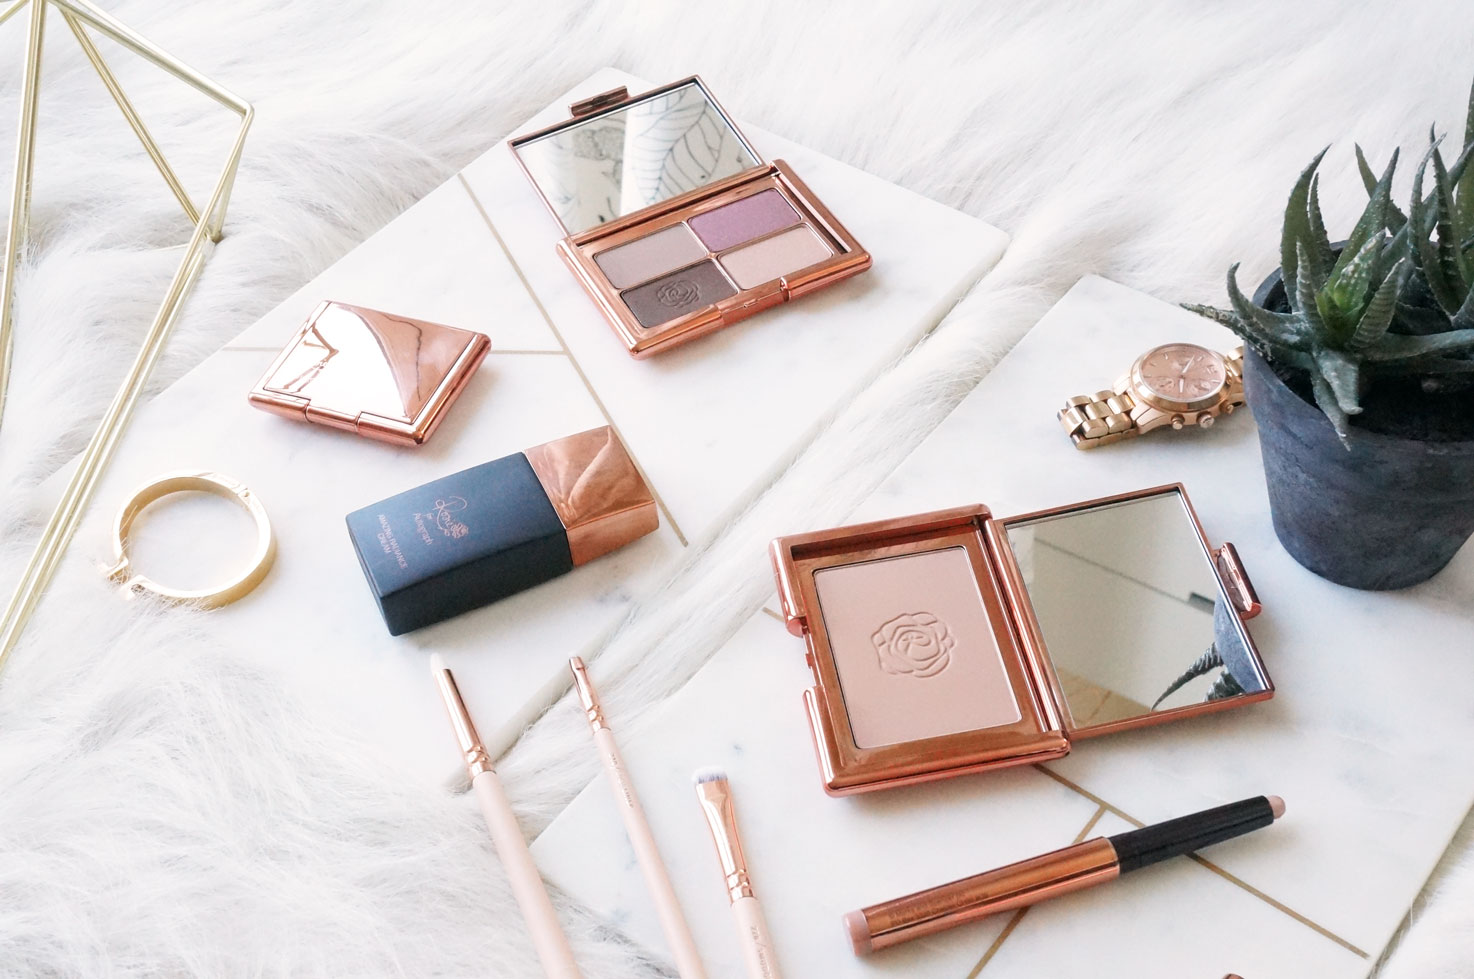 M&S-Rosie-for-Autograph-Makeup-Collection-review